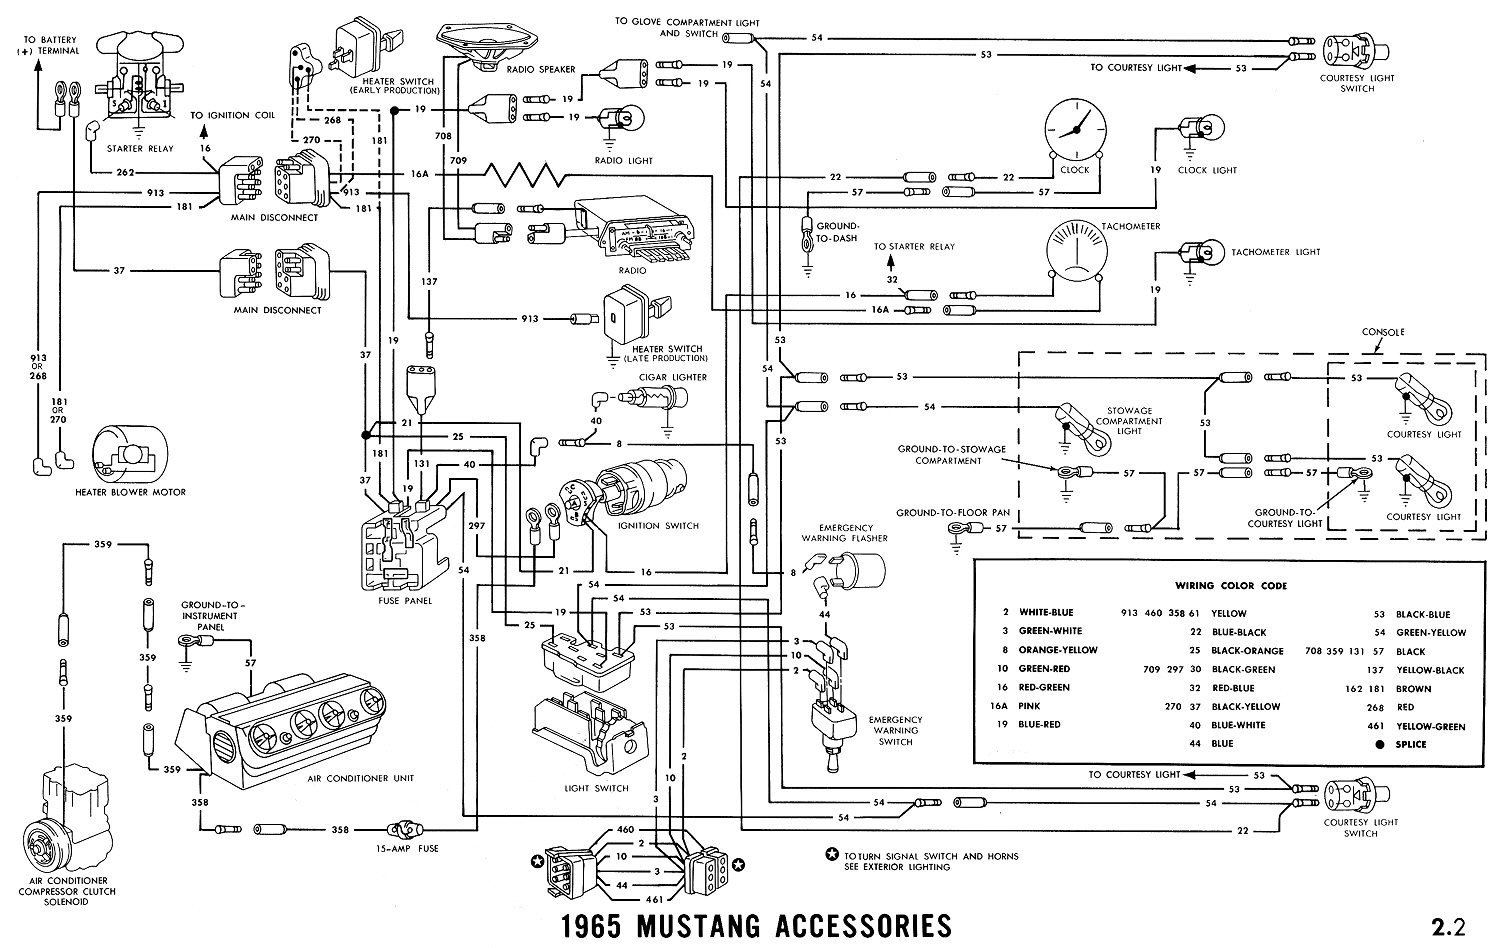 1965i 1965 mustang wiring diagrams average joe restoration 1967 mustang instrument cluster wiring diagram at sewacar.co